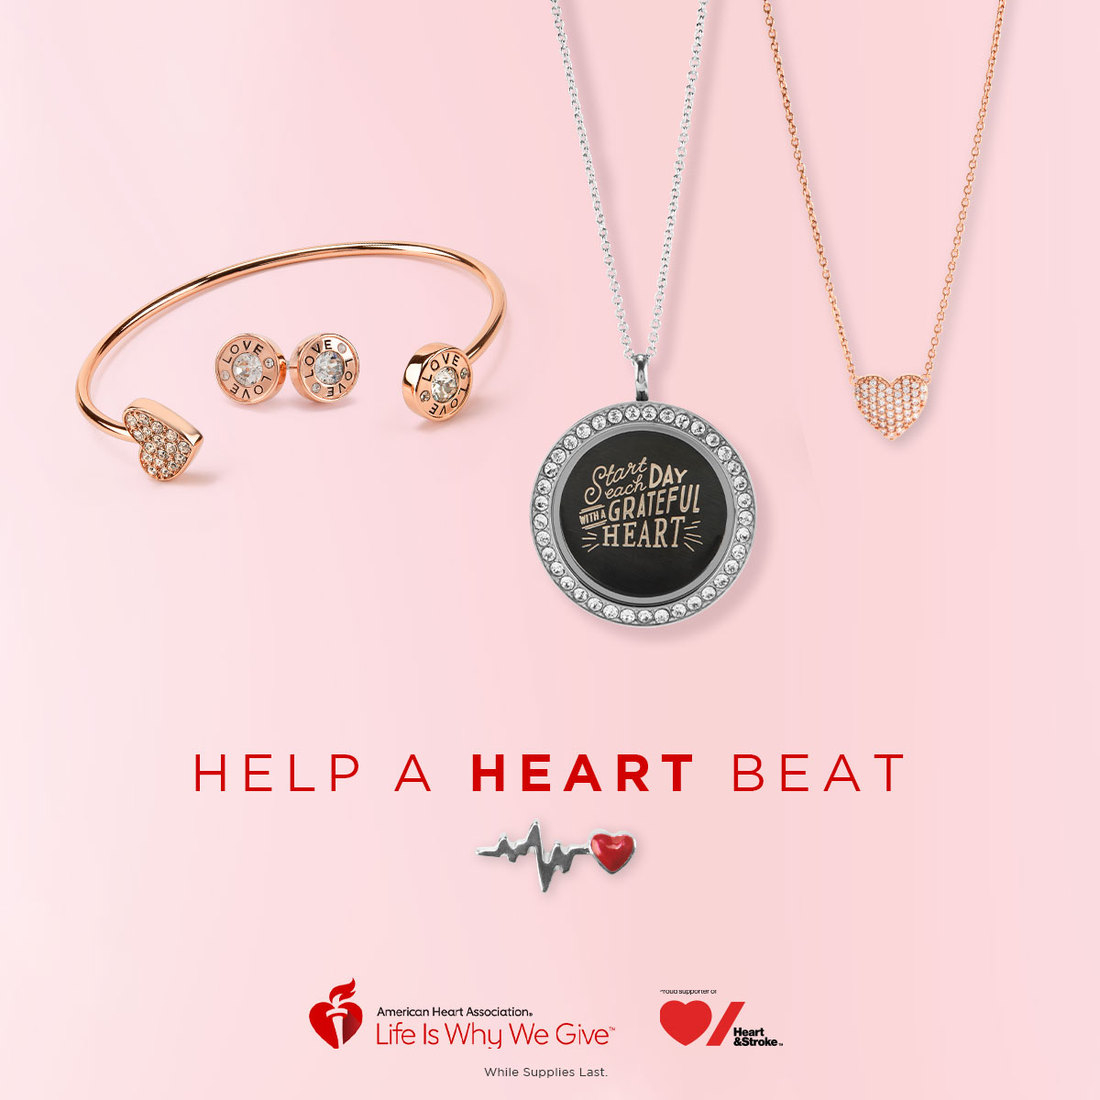 Origami Owl Over The Heart Chain Origami Owl March Specials Promotions Direct Sales And Home Based